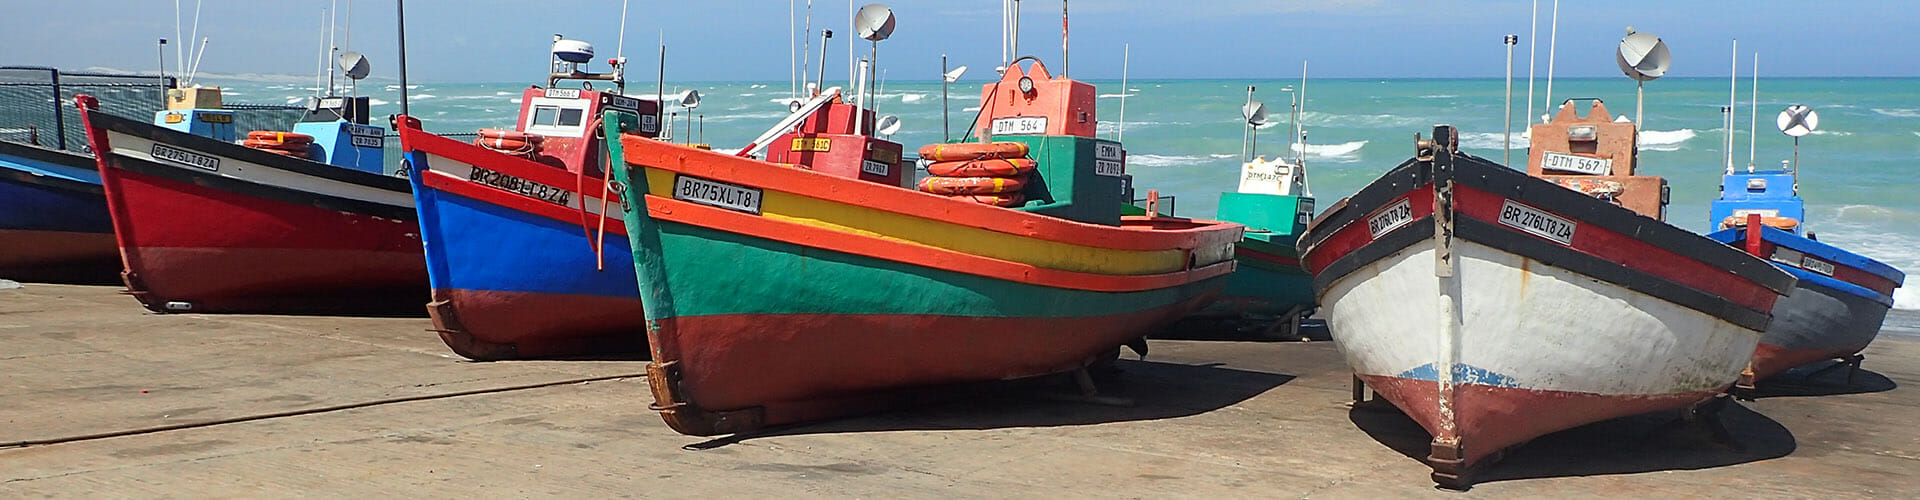 fishing boats, South Africa